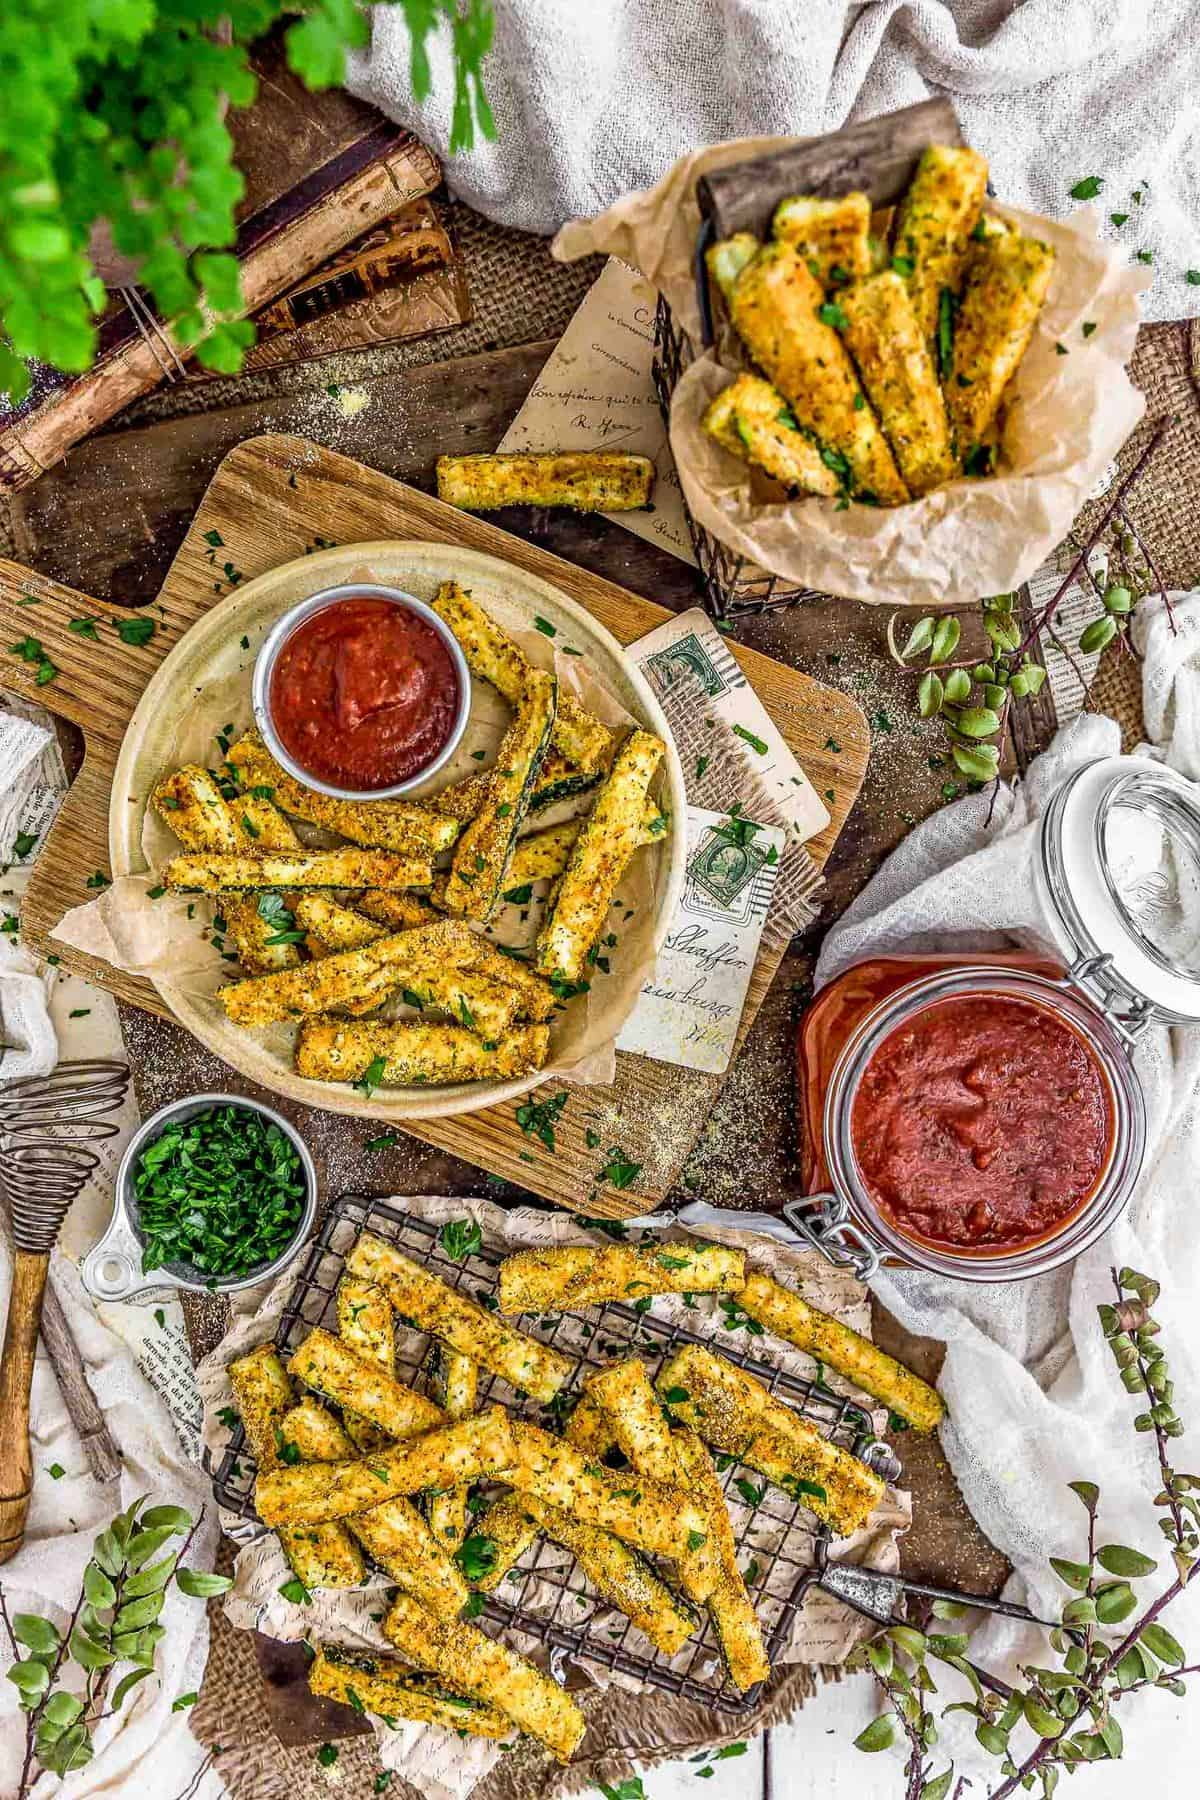 Tablescape of Italian Baked Zucchini Fries